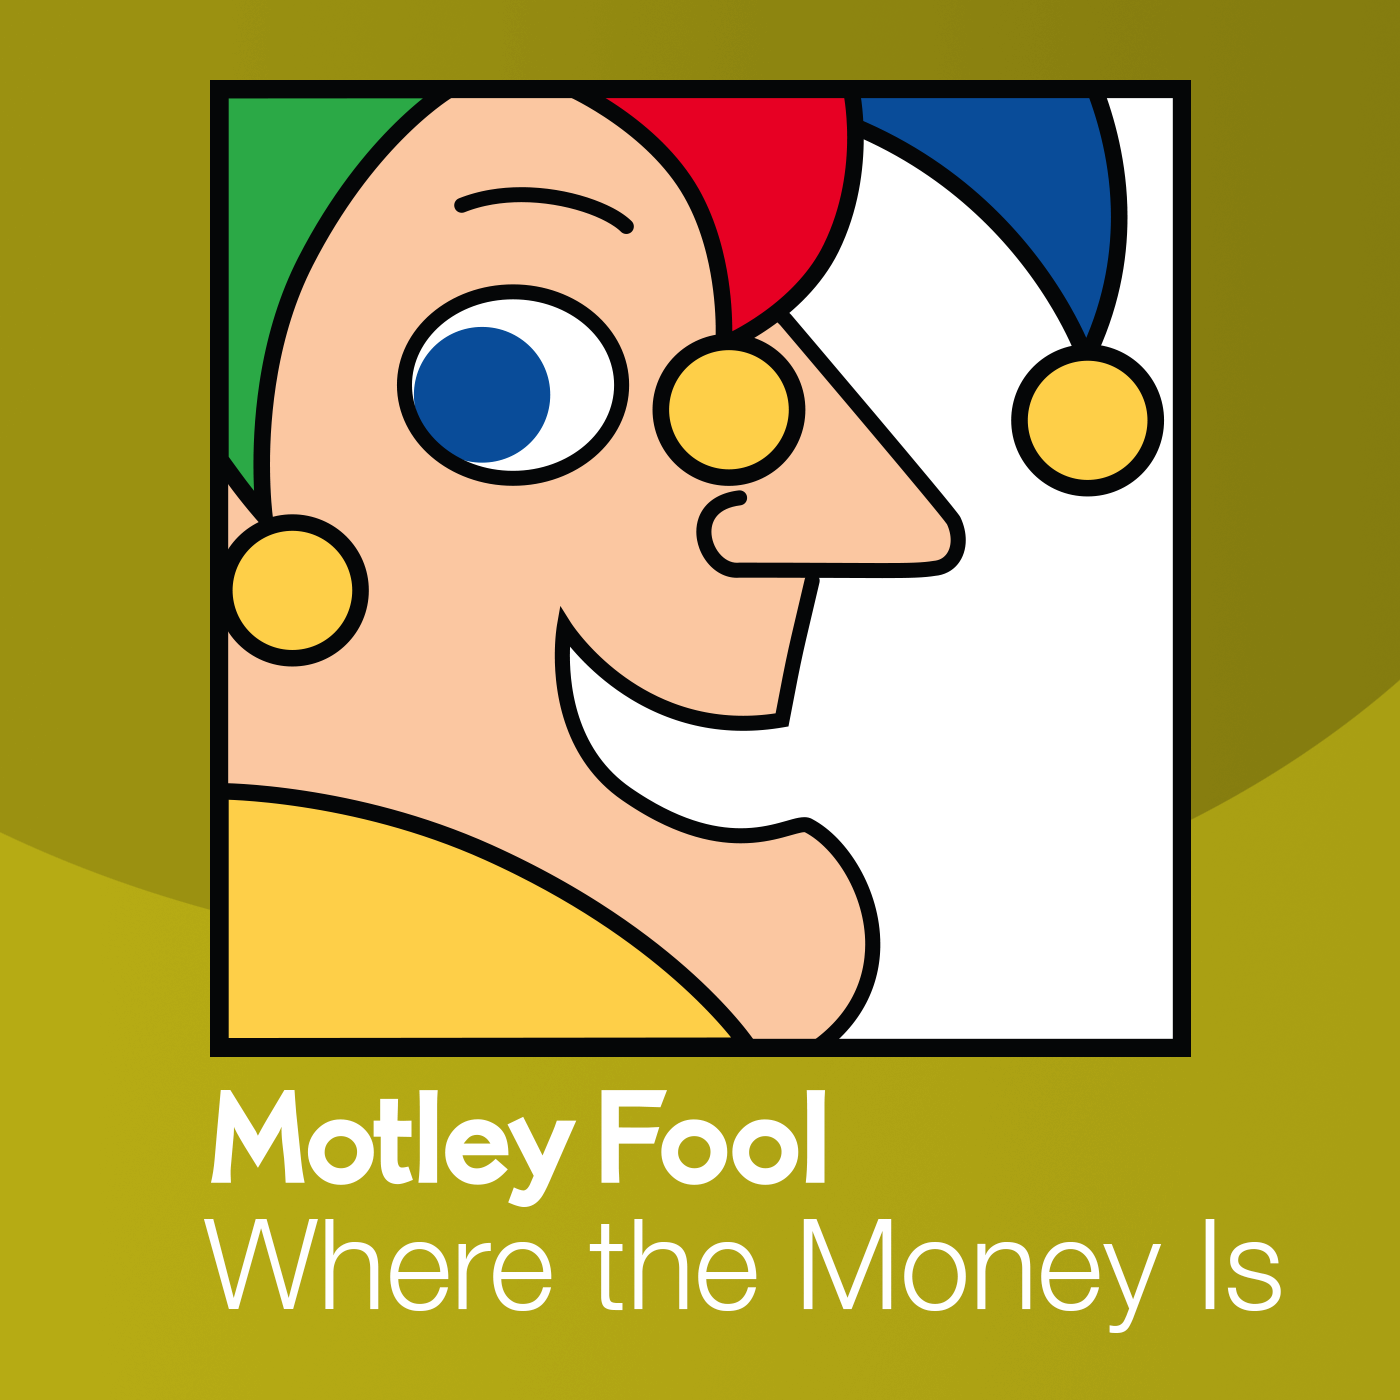 Where the Money Is 07.23.2014